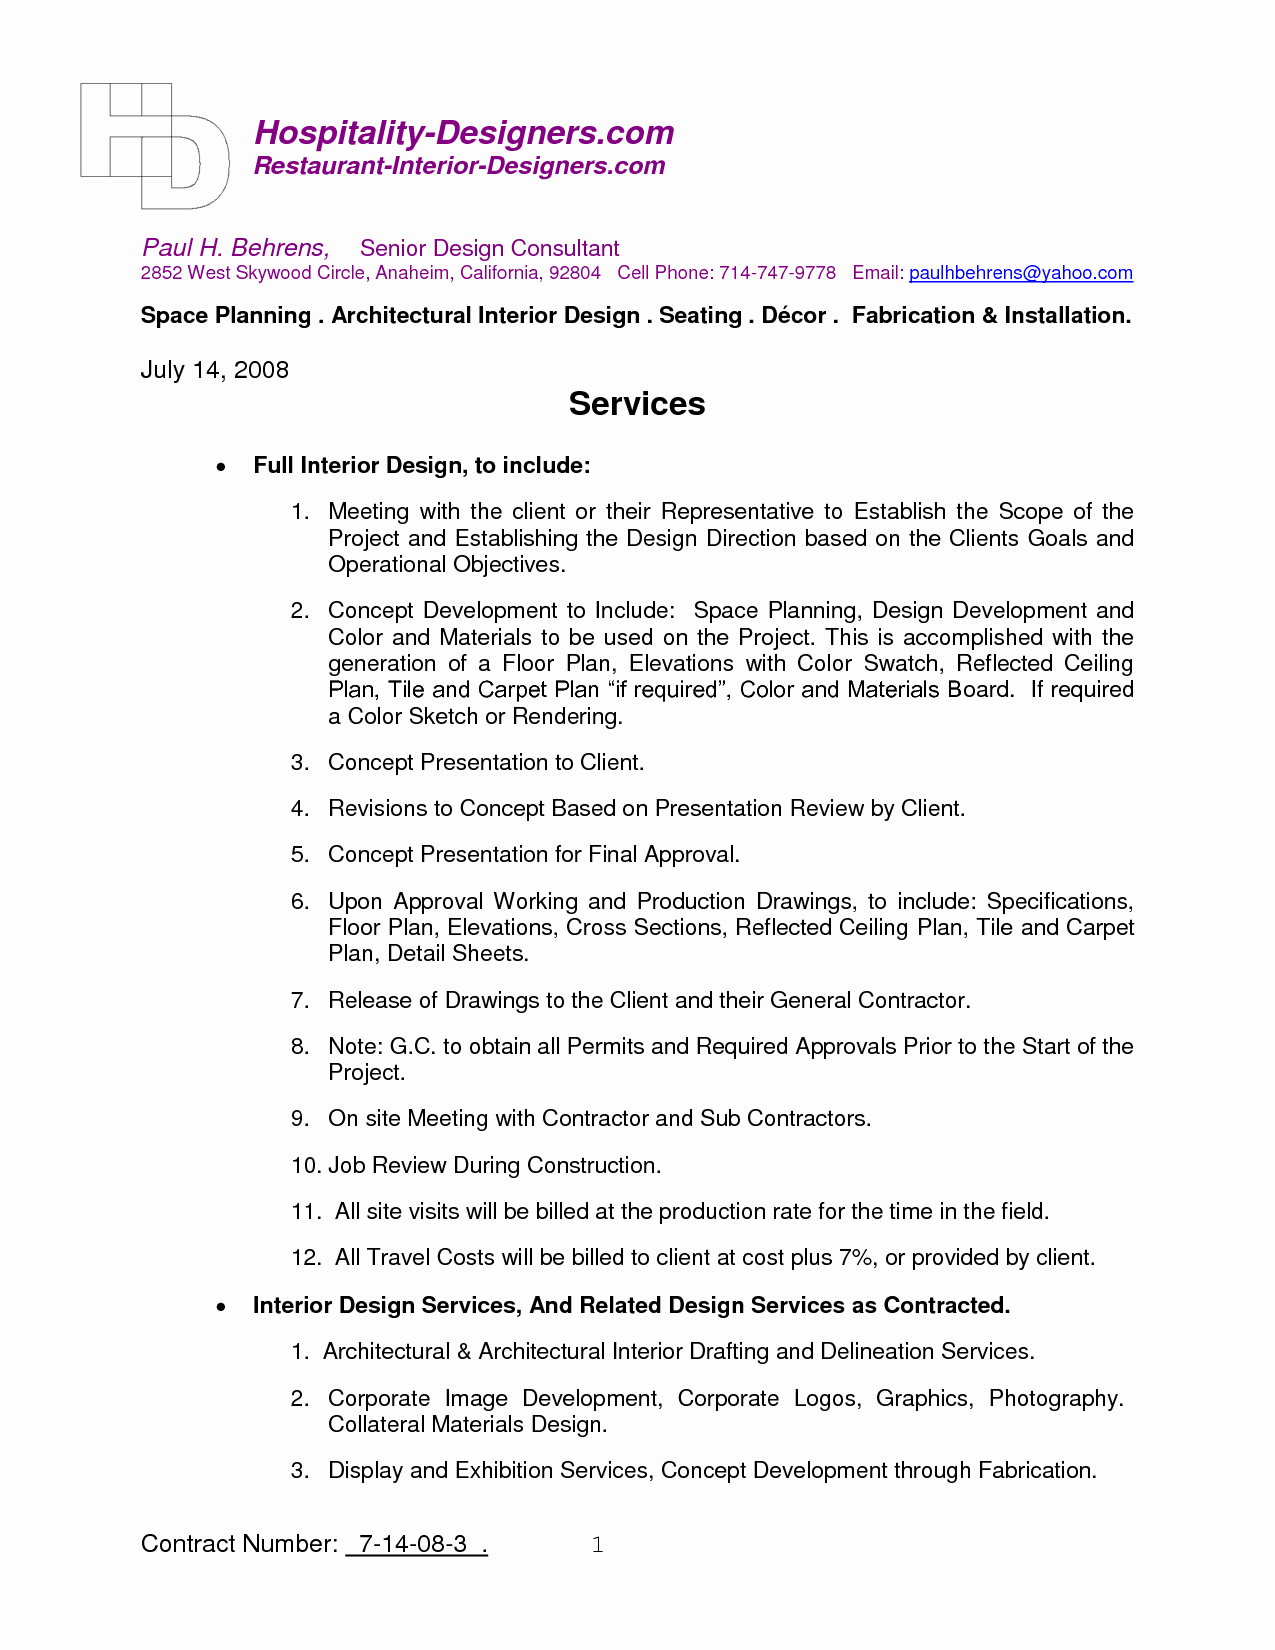 Interior Design Contract Templates Lovely Interior Design Contract Template